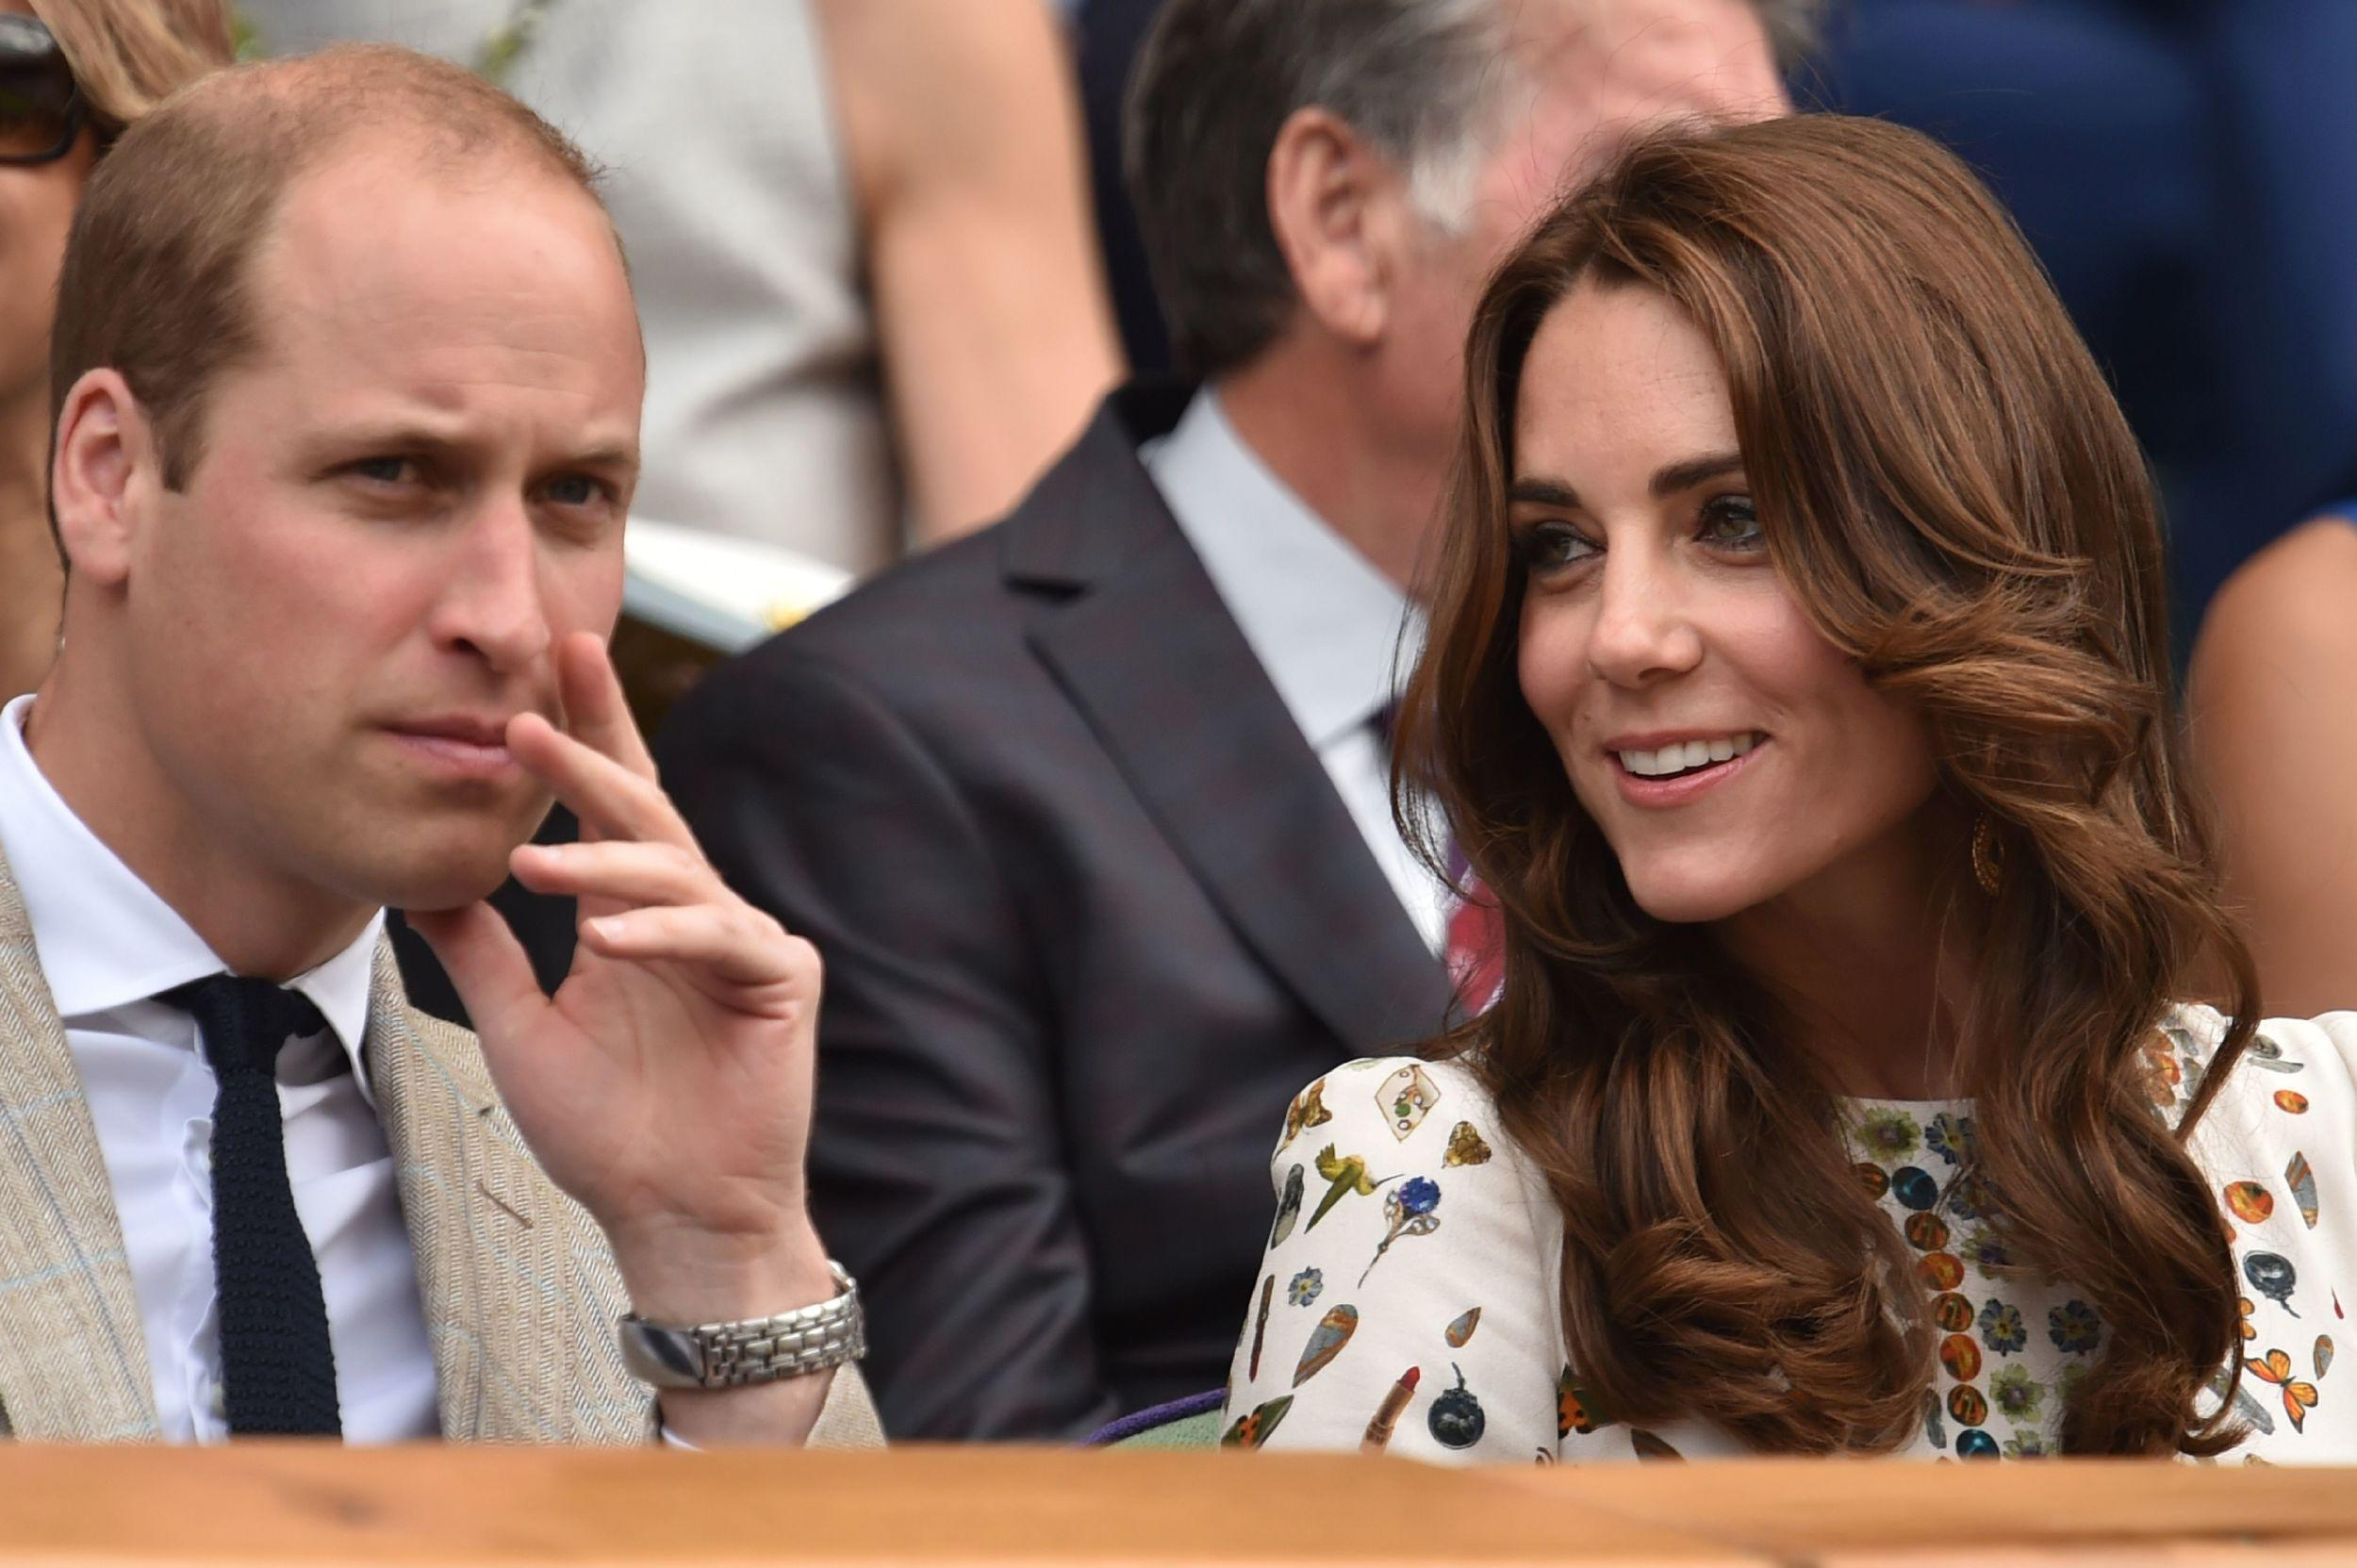 Duke and Duchess of Cambridge in the royal box on centre court.